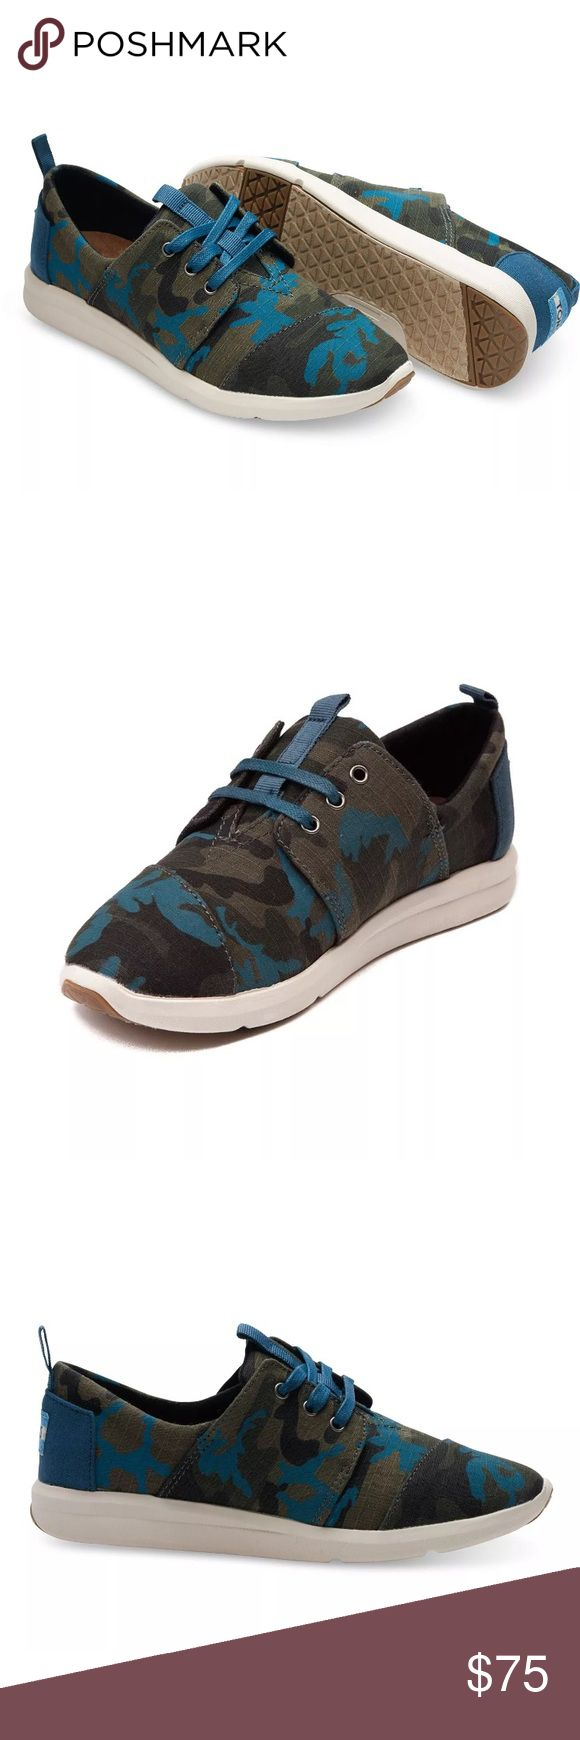 TOMS CAMO CANVAS PRINTED DEL REY SNEAKERS SZ 5.5 Women's Size 5.5 TOMS camouflage Del Ray sneakers No flaws or defects, smoke & pet free. All offers welcome. No trades! TOMS Shoes Sneakers